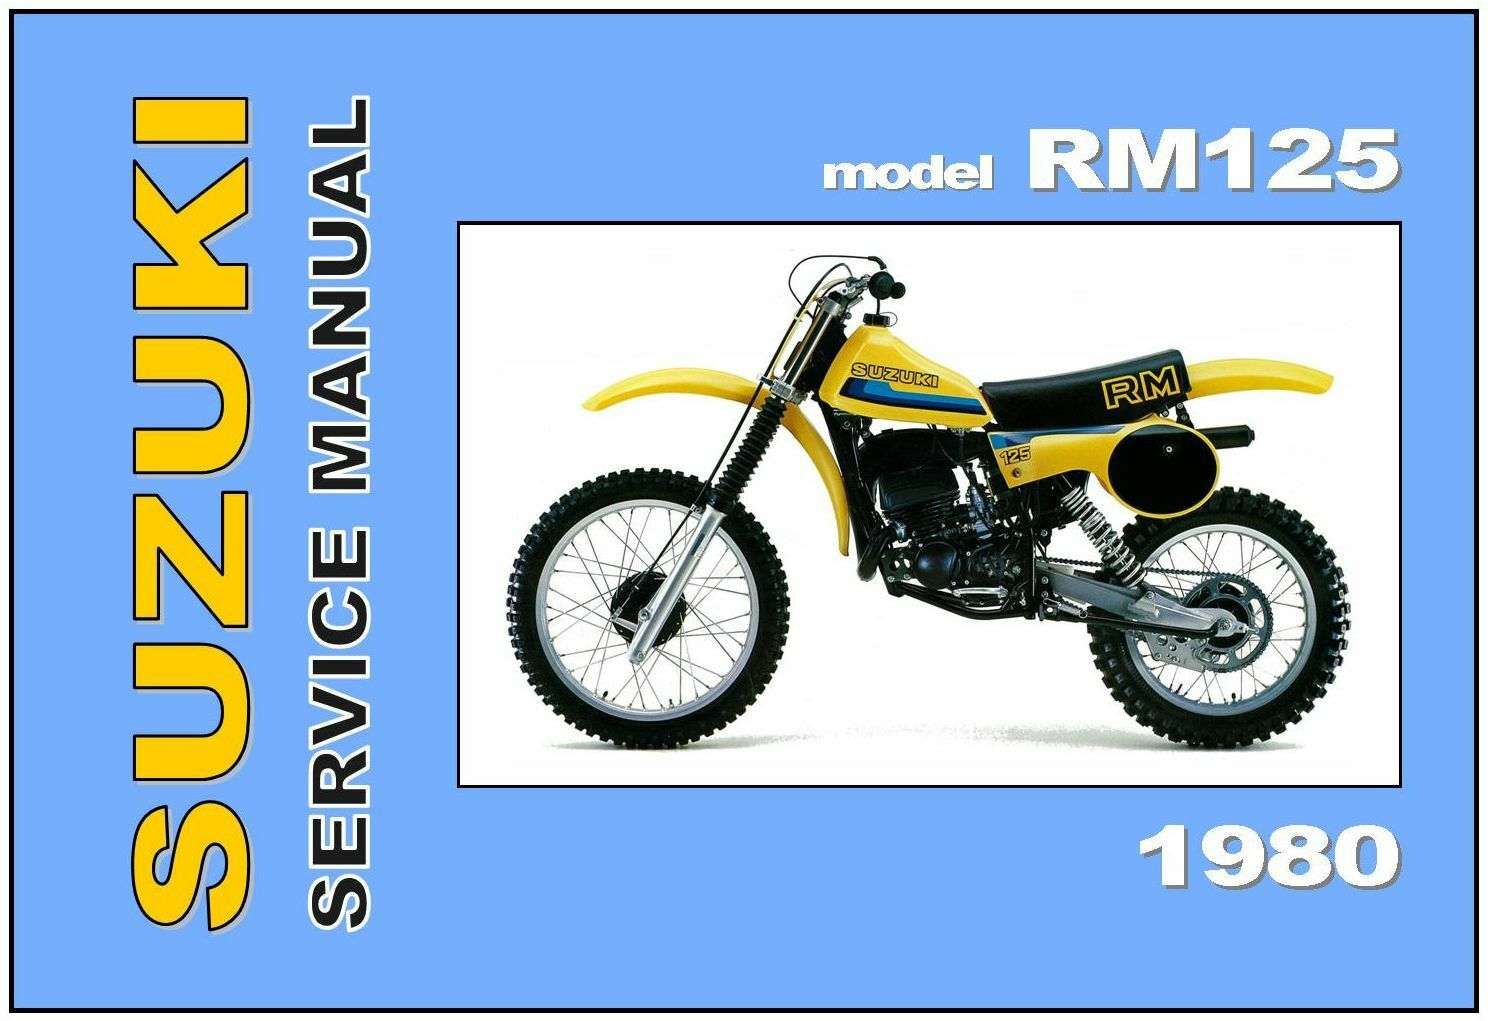 SUZUKI Workshop Manual RM125 RM125T 1980 VMX Maintenance Service & Repair 1  of 4 ...